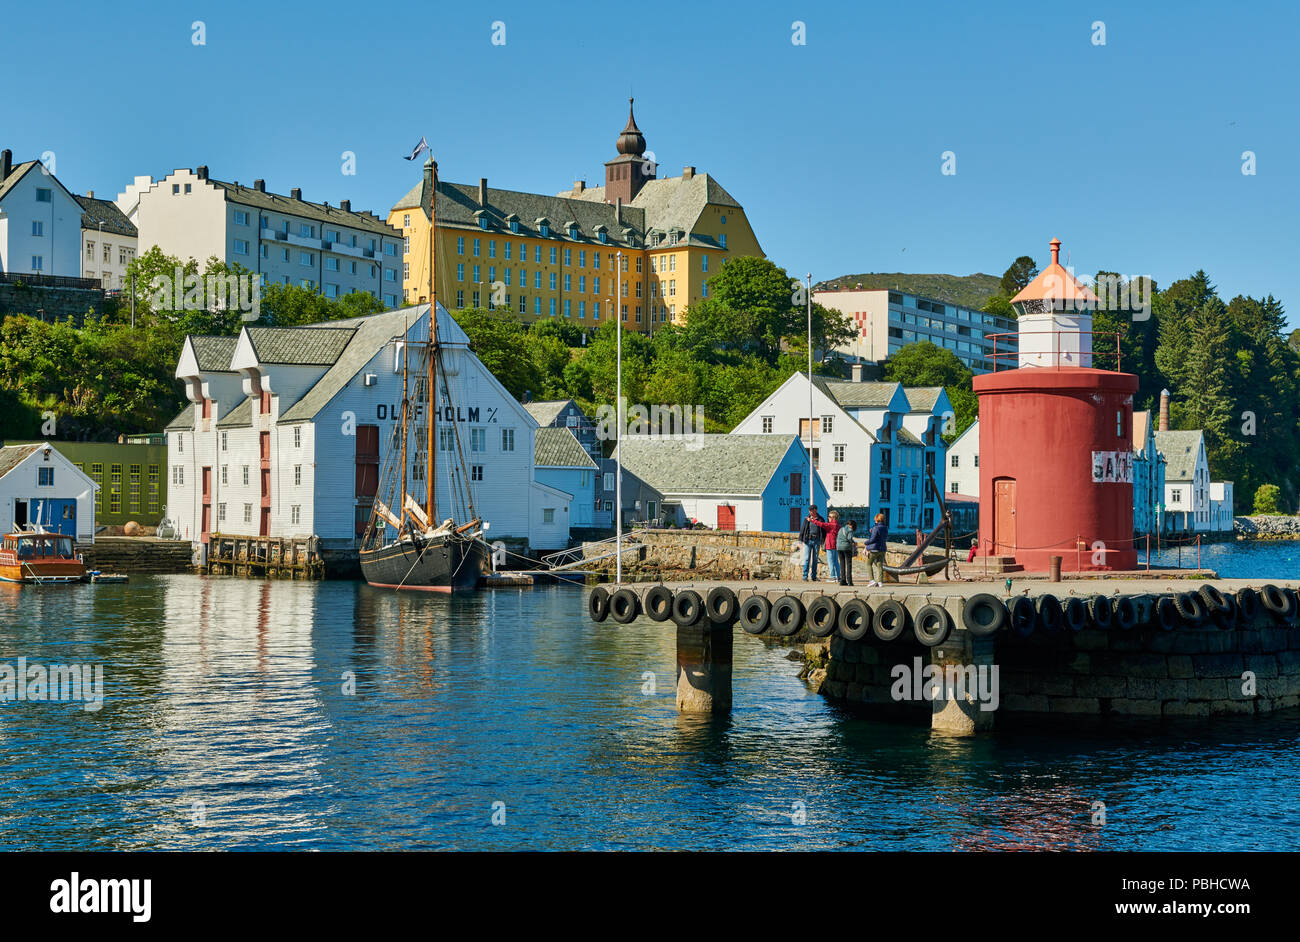 lighthouse at entrance of old harbor, Ålesund, Norway, Europe - Stock Image